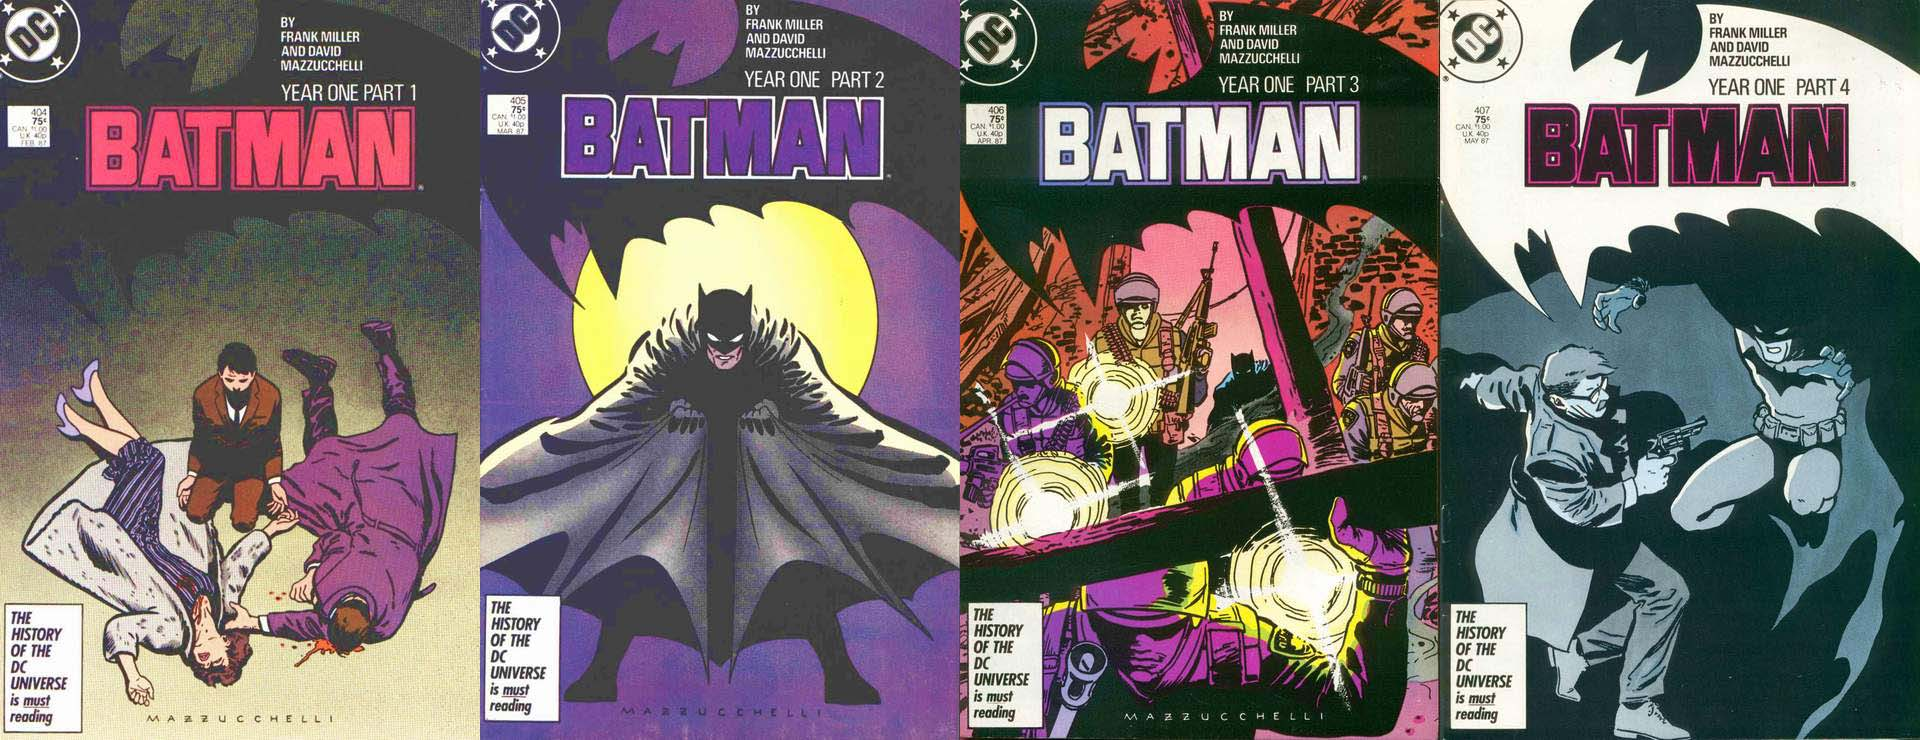 the-four-covers-of-batman-year-one